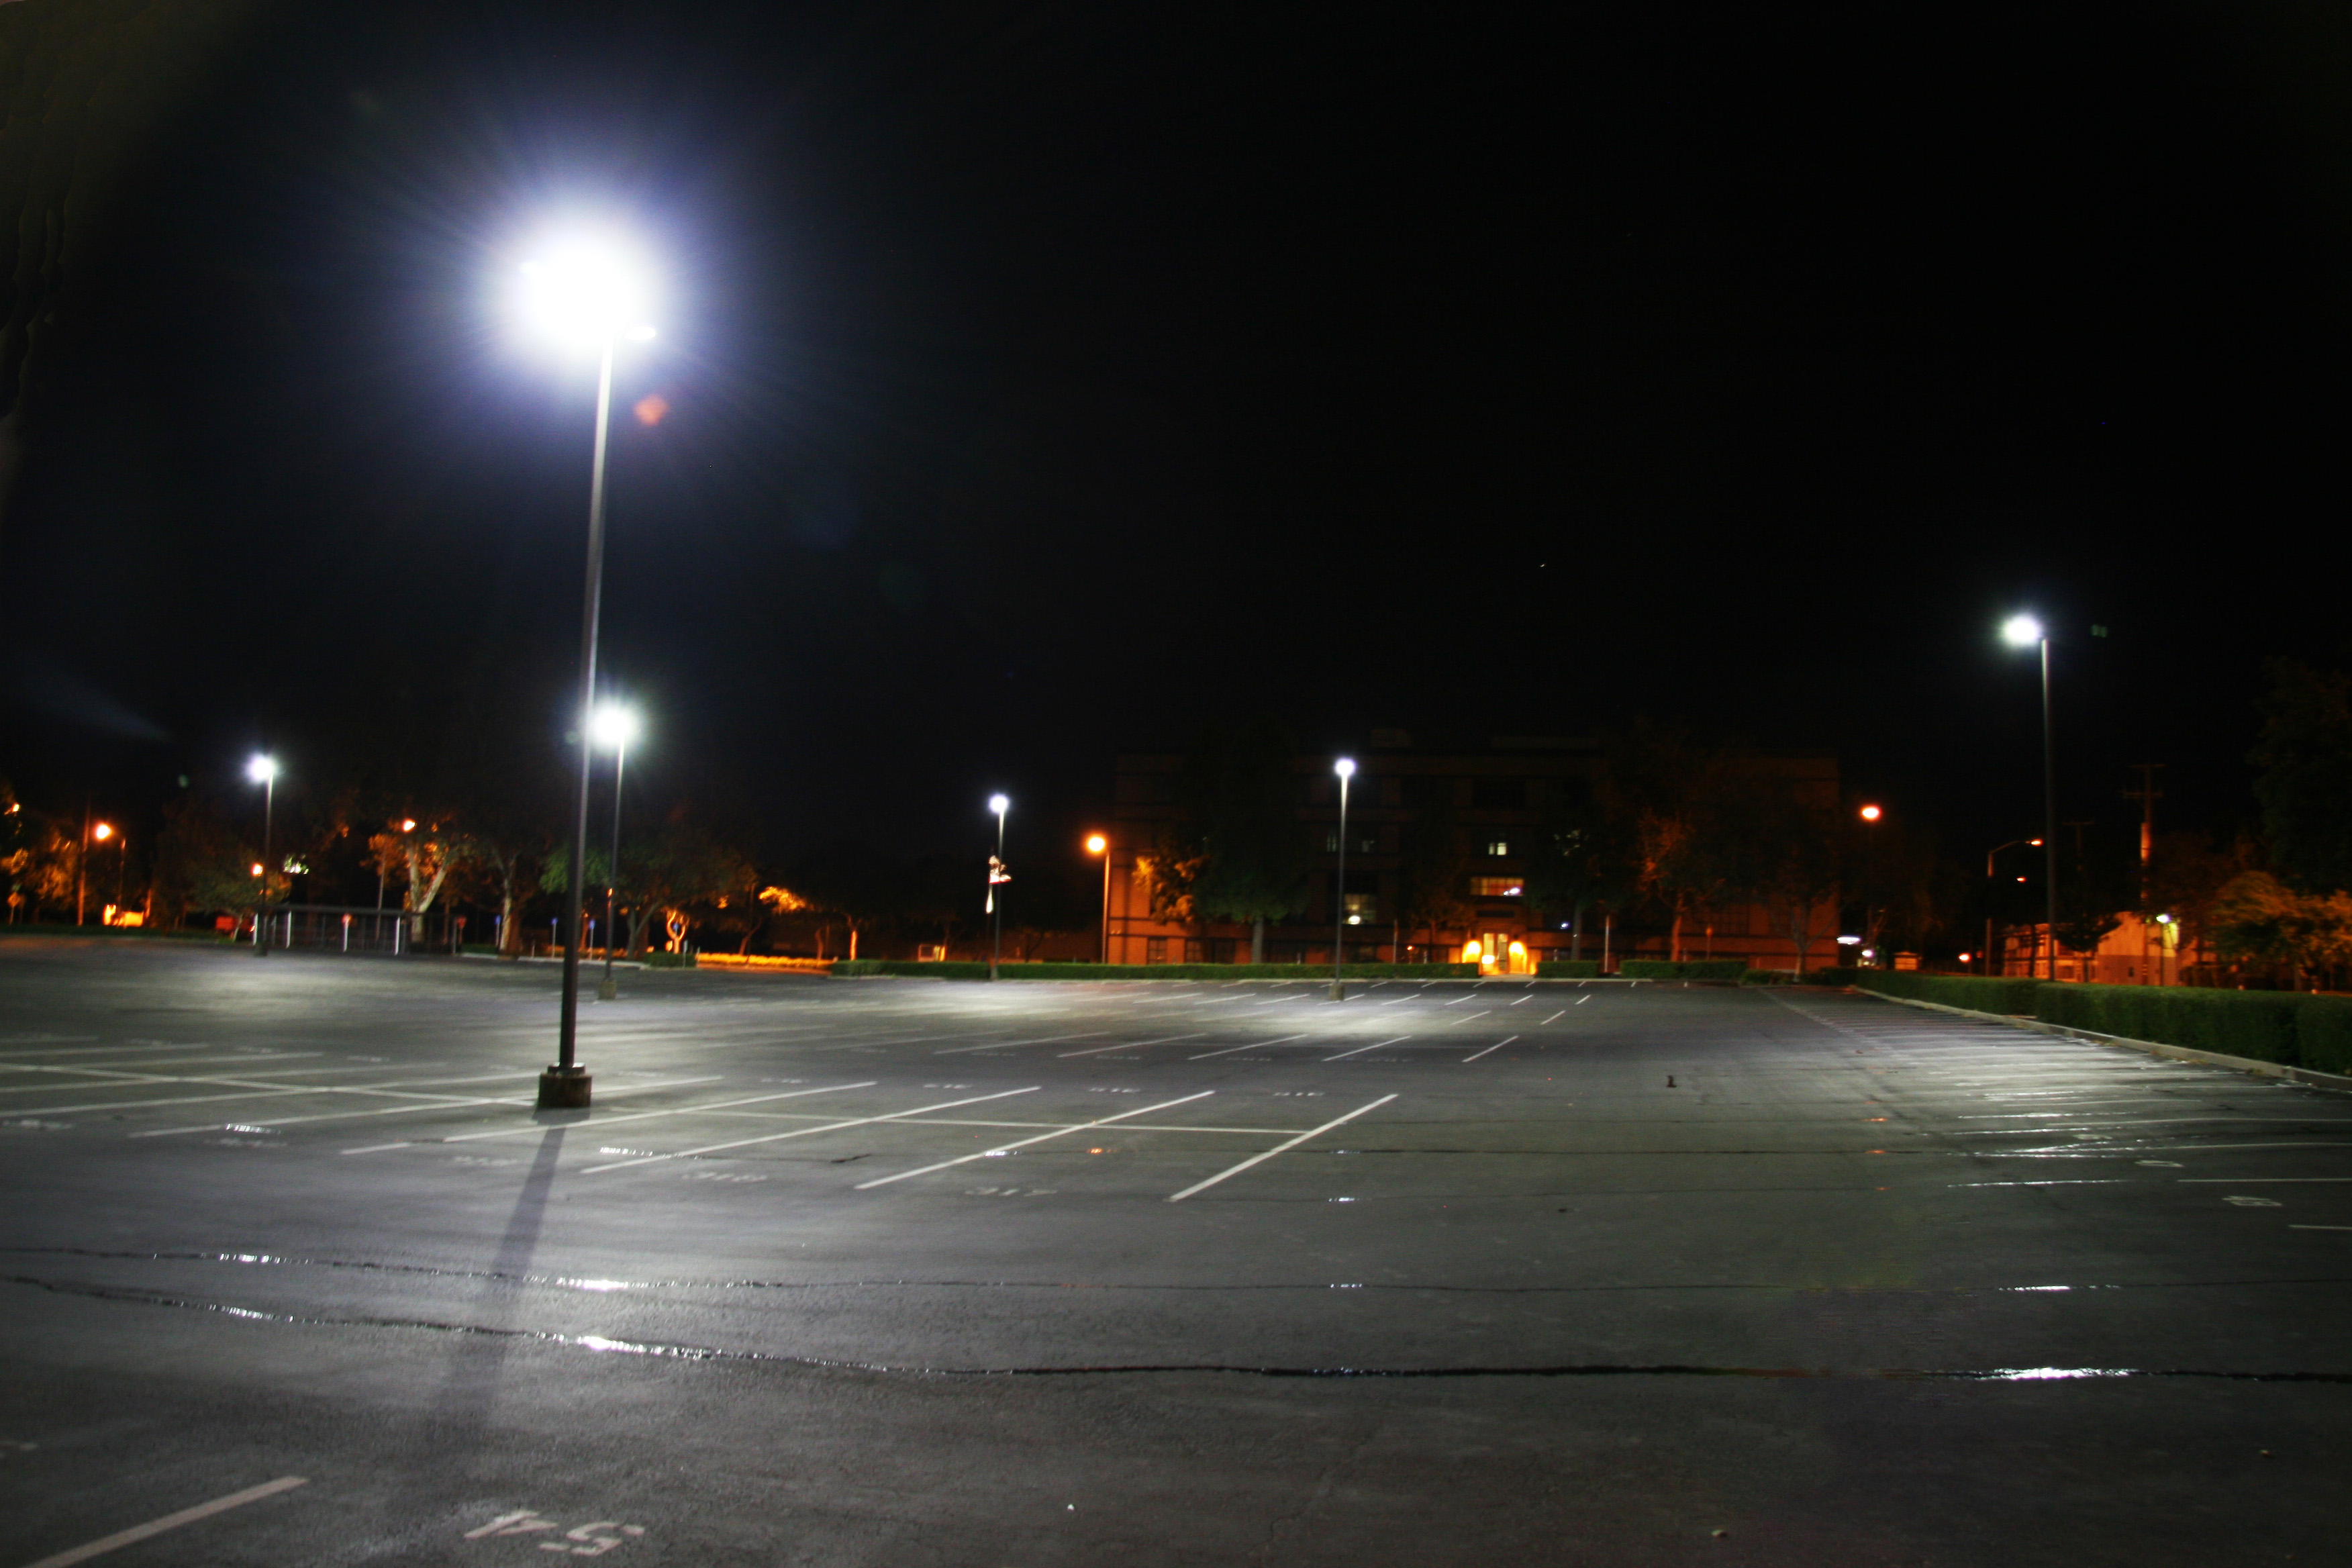 study parking upgrade lot saves leed terra for a case hoa even building light new blog garage nearly lighting primera energy led